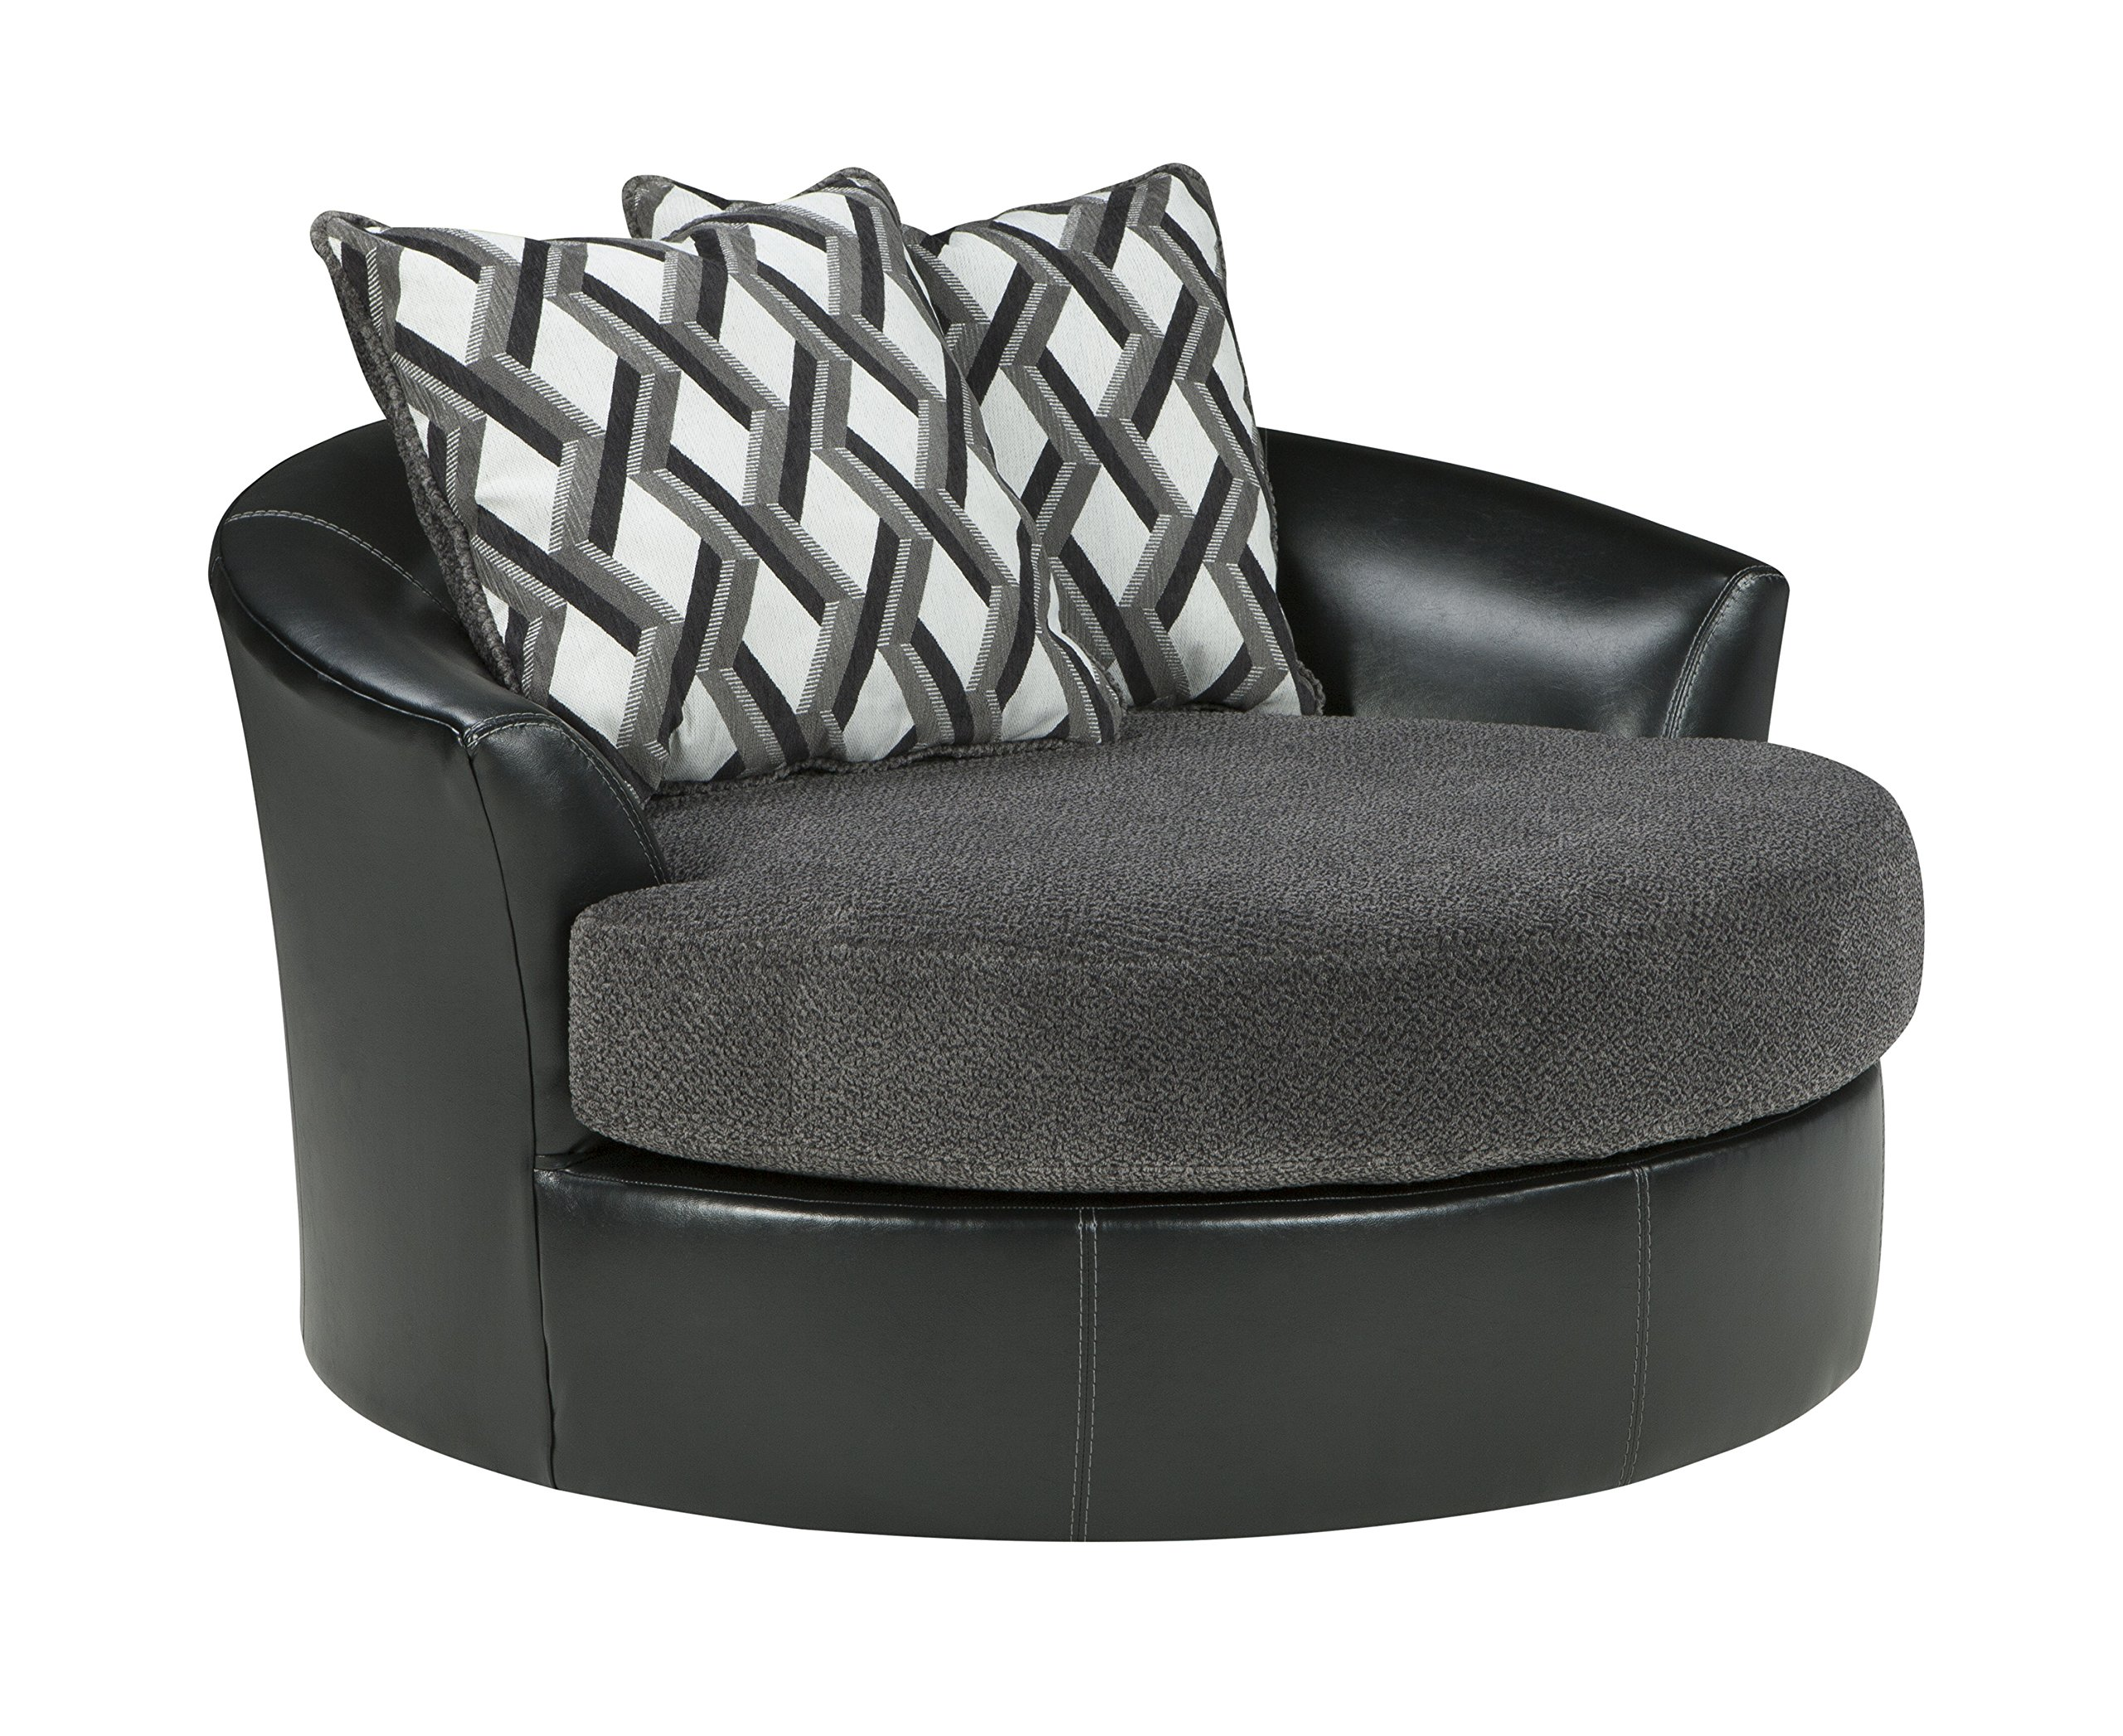 Benchcraft - Kumasi Contemporary Oversized Swivel Accent Chair - Smoke Gray  sc 1 st  Amazon.com & Round Sofa Chair: Amazon.com